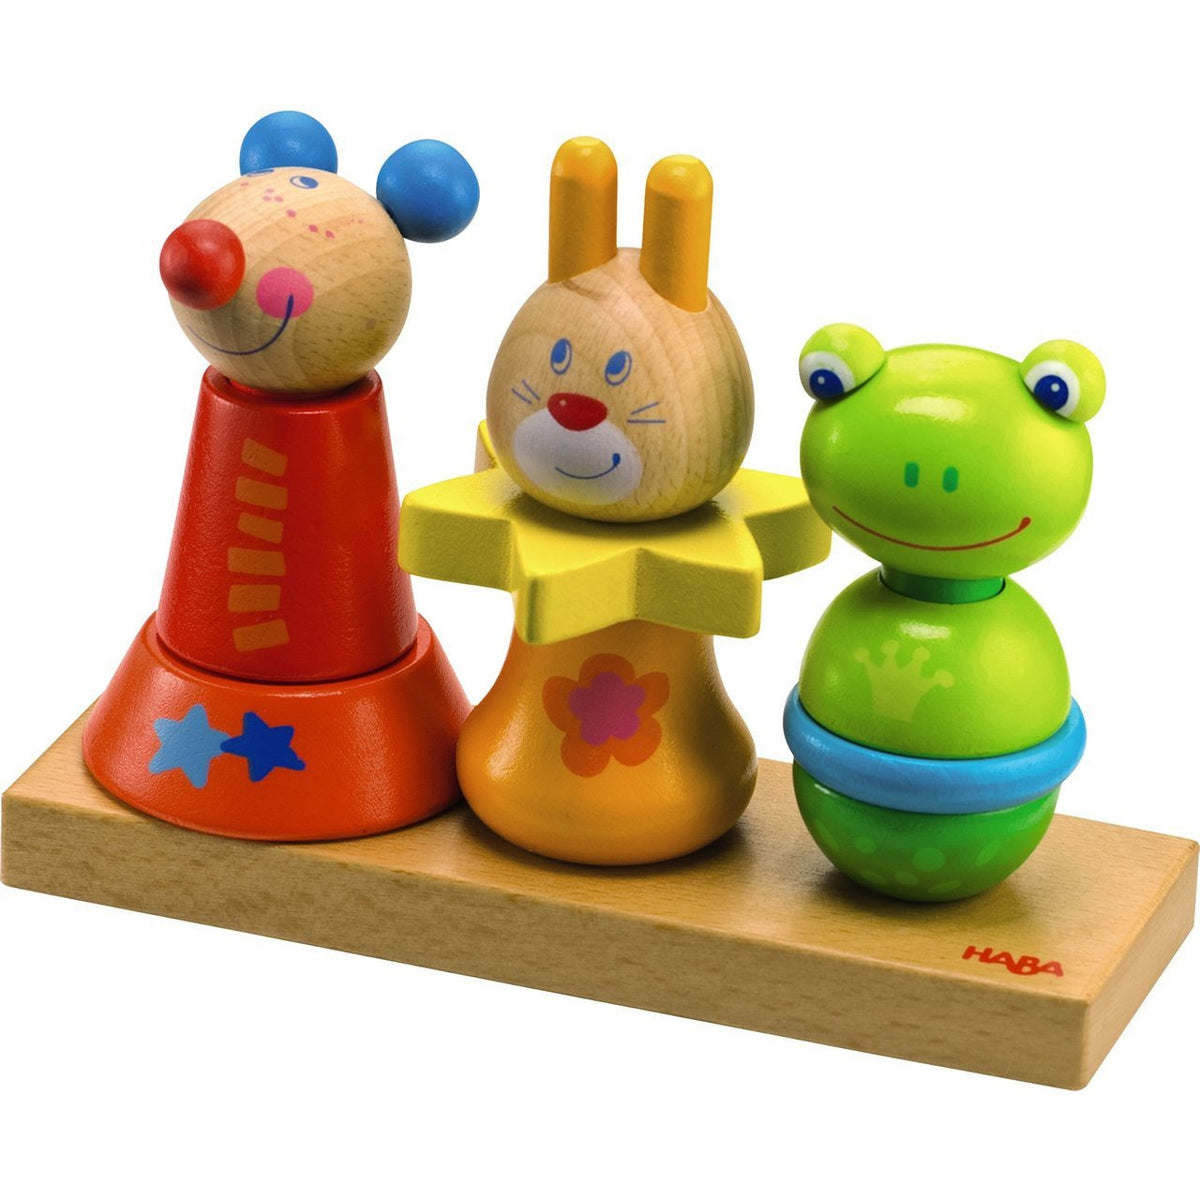 Haba Animal Trio Set